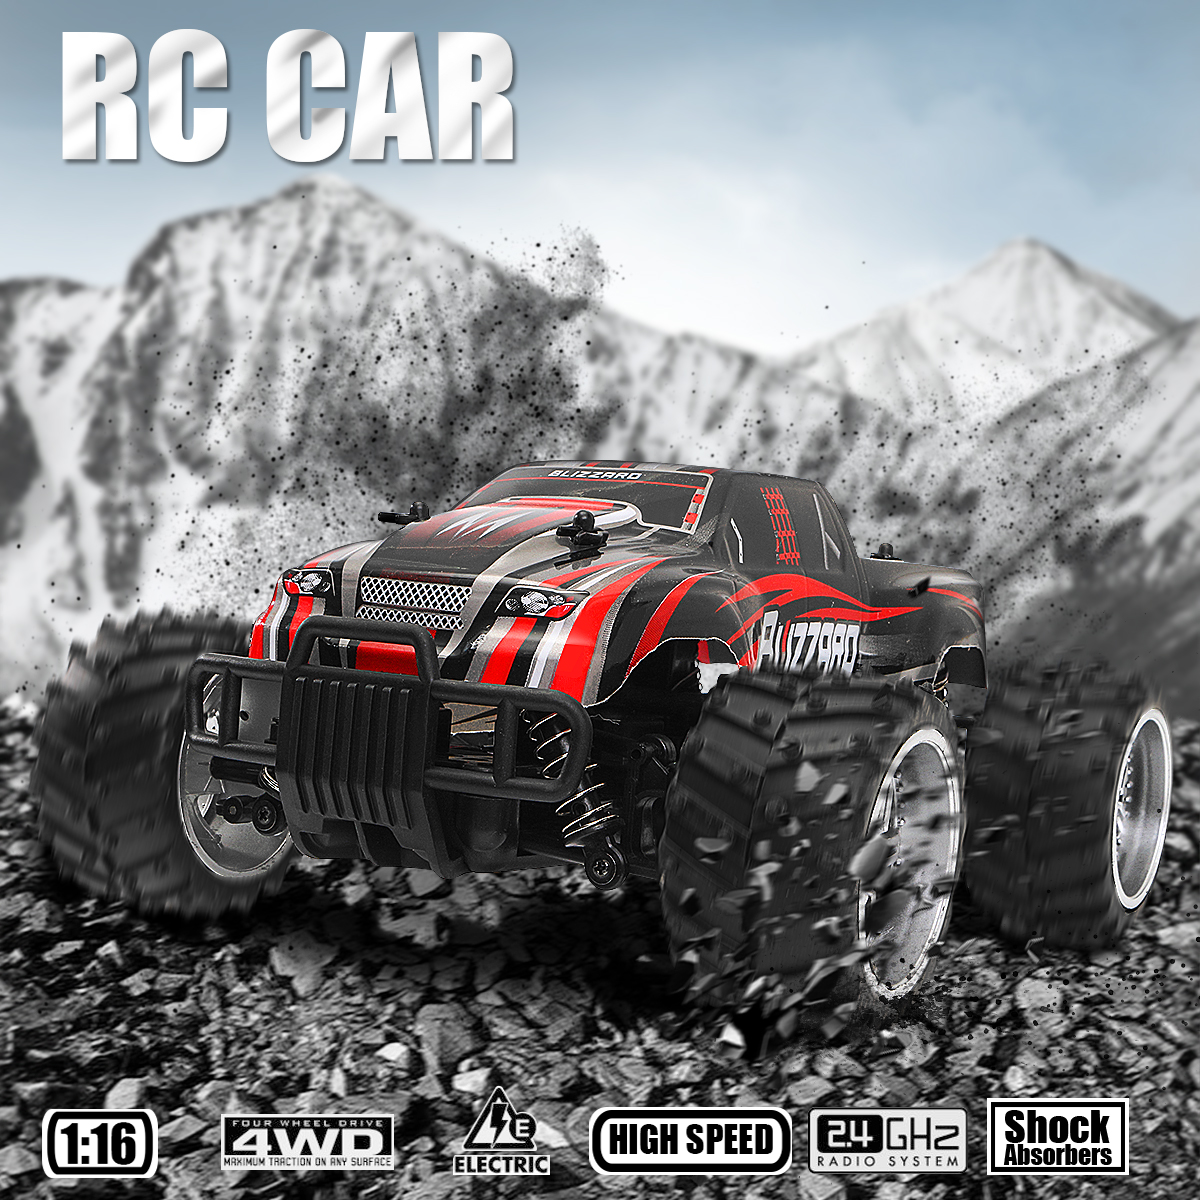 1/16 Scale 2WD 2.4GHz High Speed Radio Remote Control RC Crawler Racing Buggy Car Off Road Truck RTR Gift Toy for Children Kid immdos winter new arrival down jacket for boy children hooded outwear kids thick coat baby long sleeve pocket fashion clothing page 3